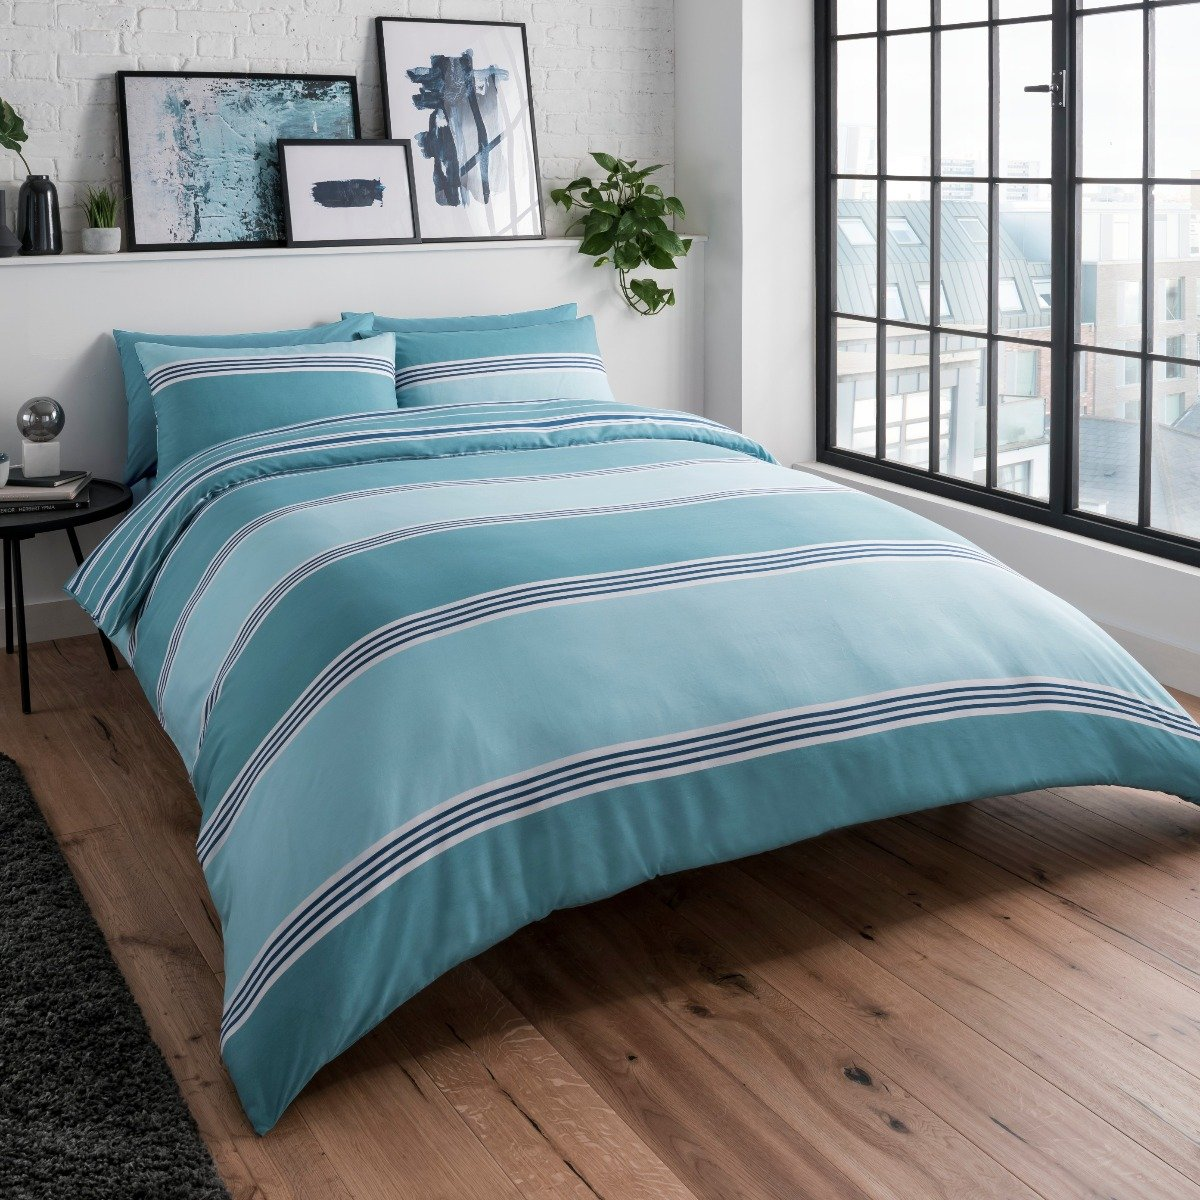 Banded Stripe Teal Bedding - Reversible Duvet Cover and Pillowcase Set